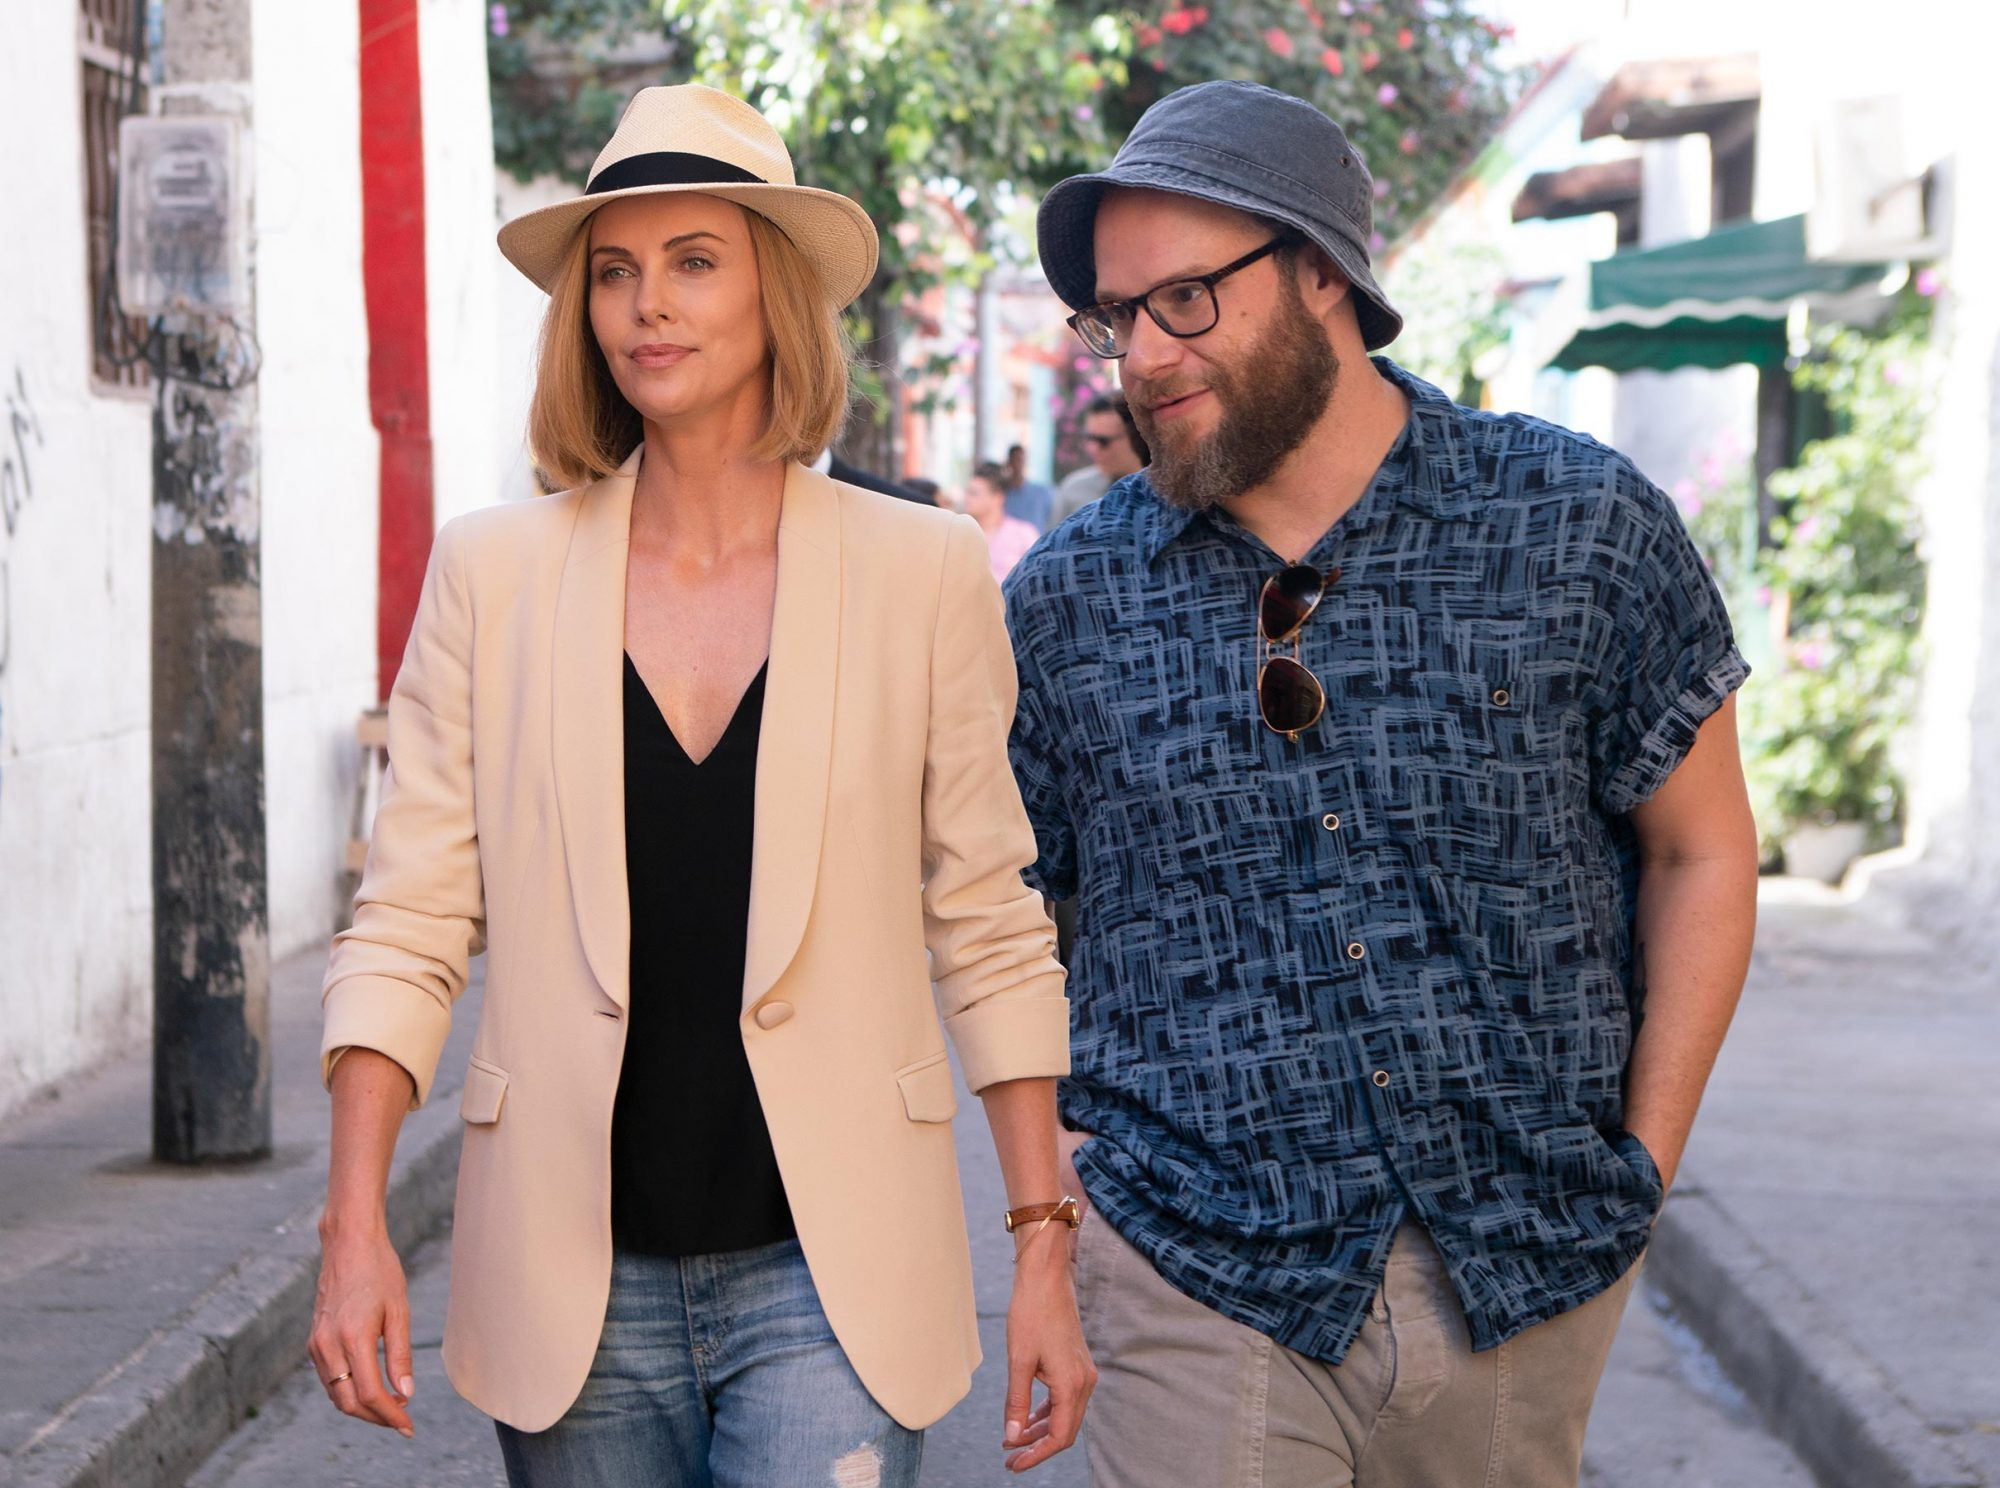 11. Seth Rogen and Charlize Theron in Long Shot (2019)